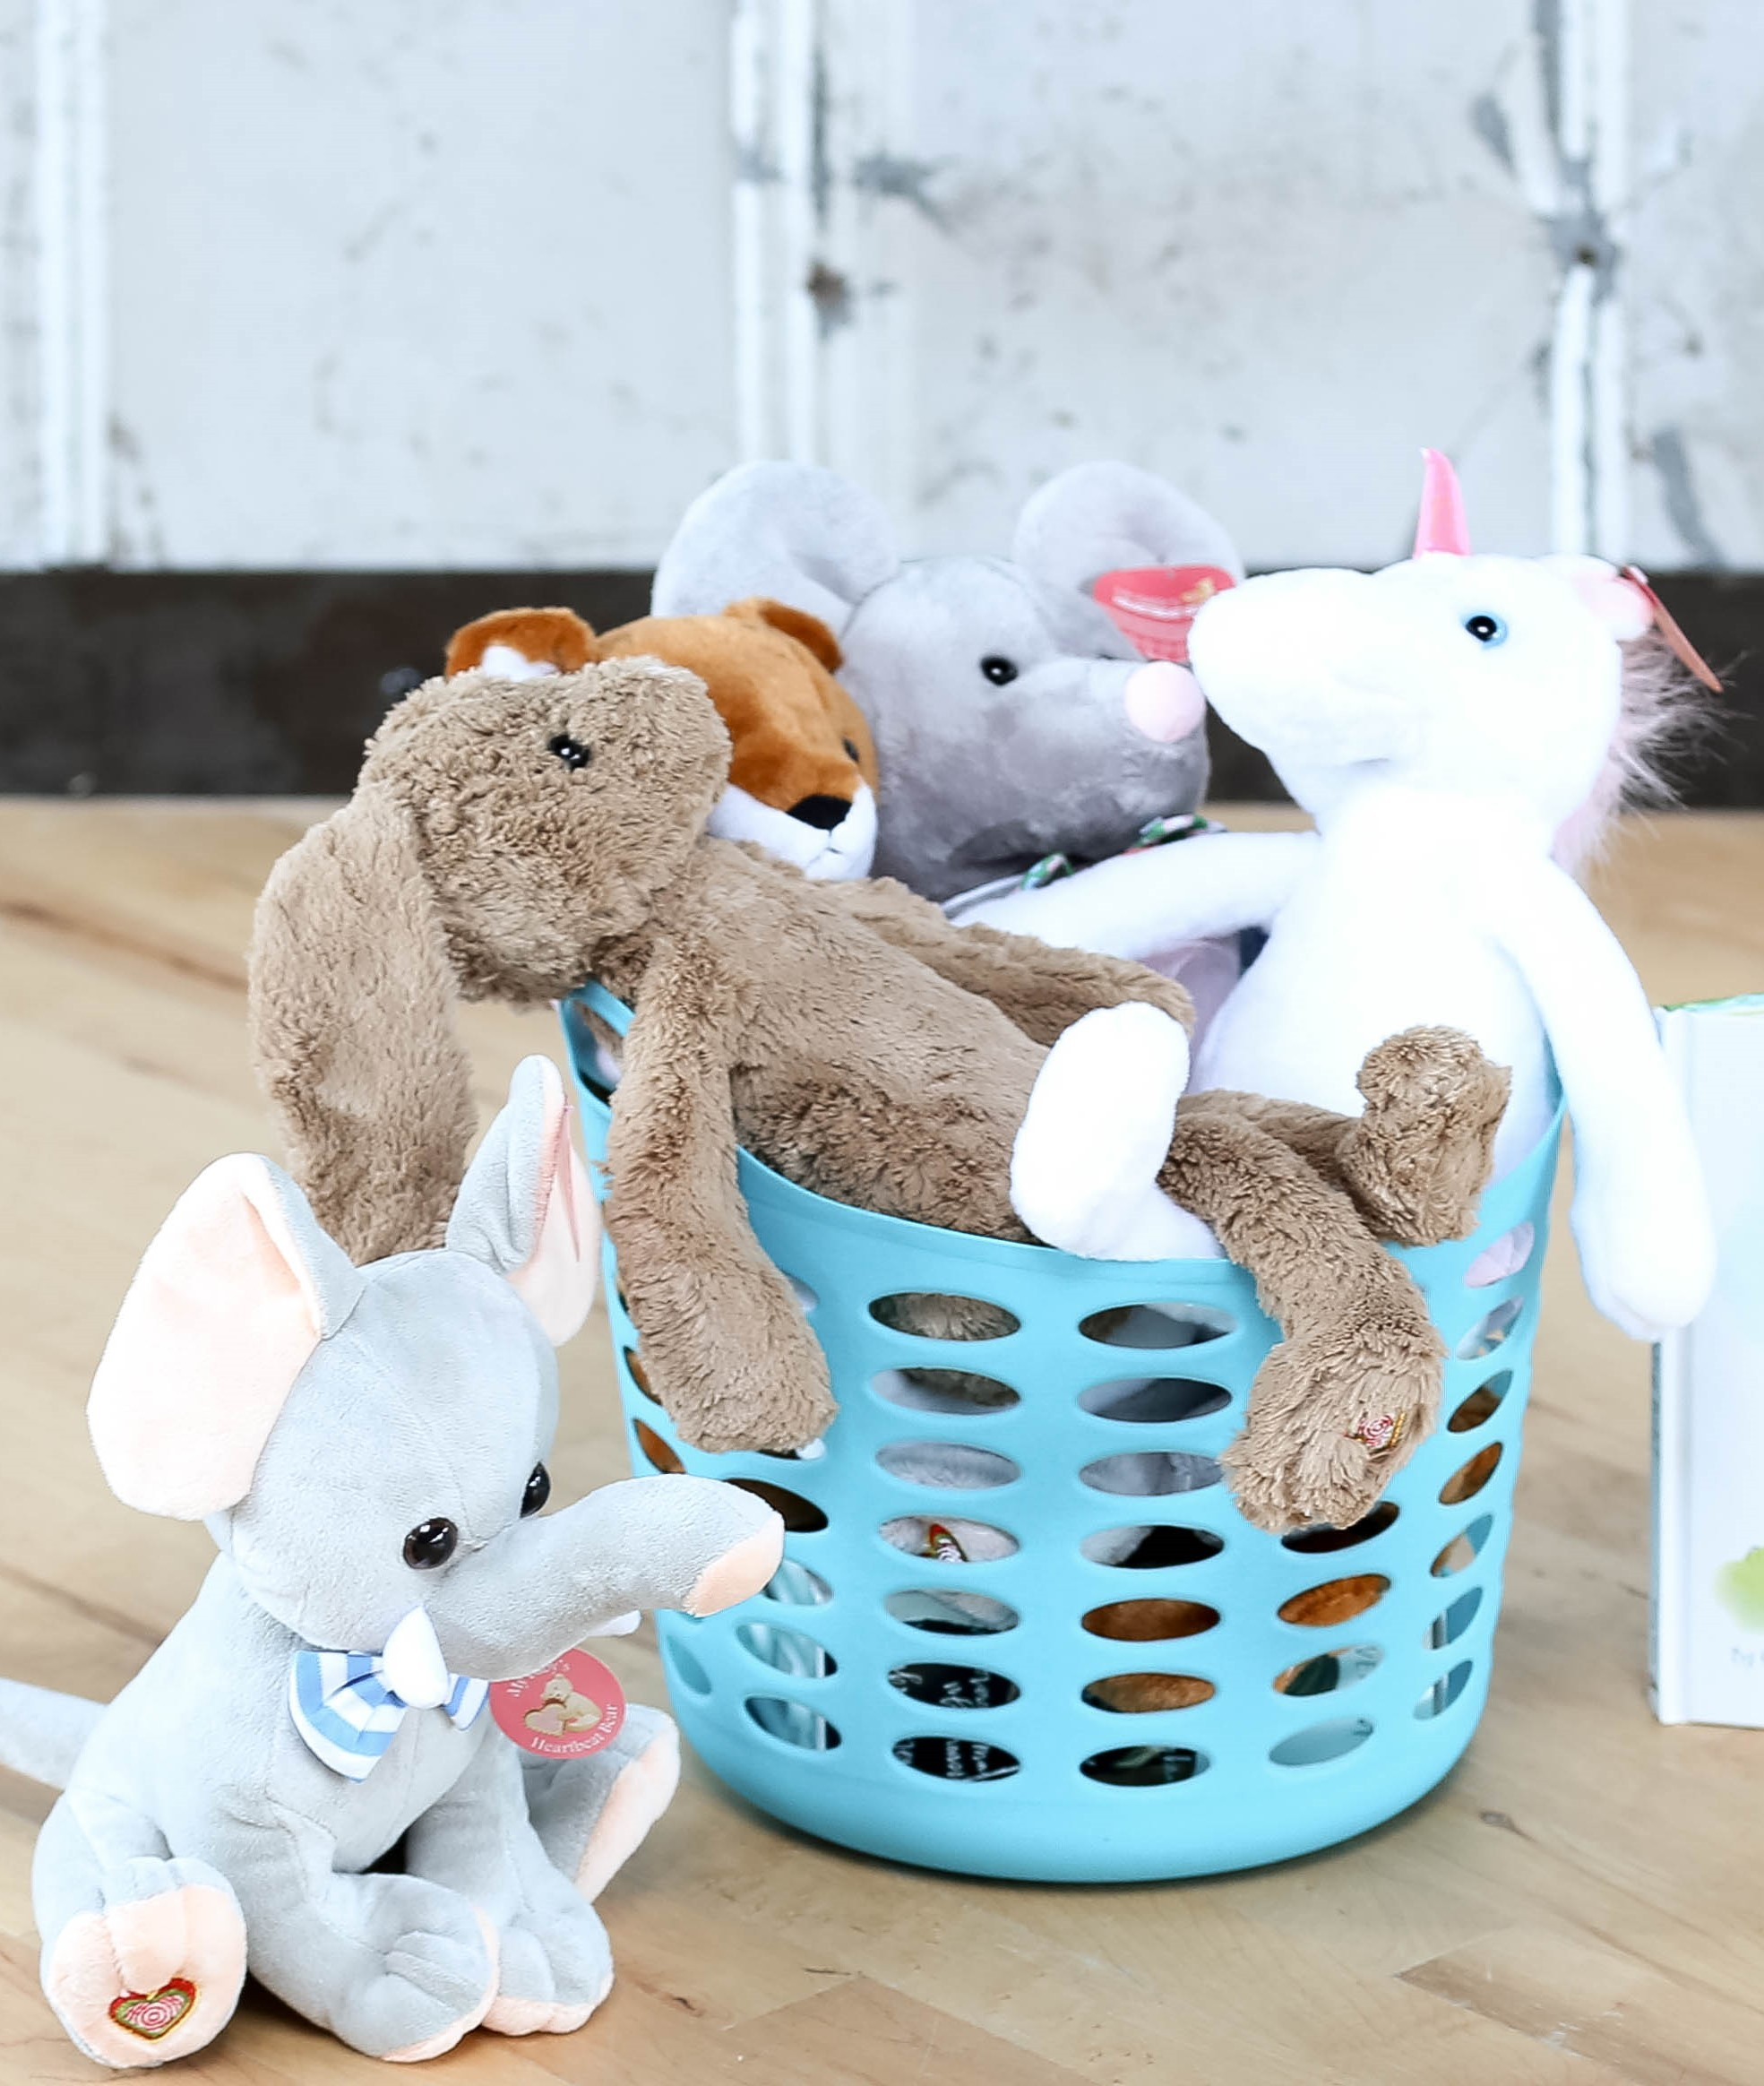 Heartbeat Bears  are snugly & soothing with the option to record your baby's ultrasound heartbeat  & tuck it inside